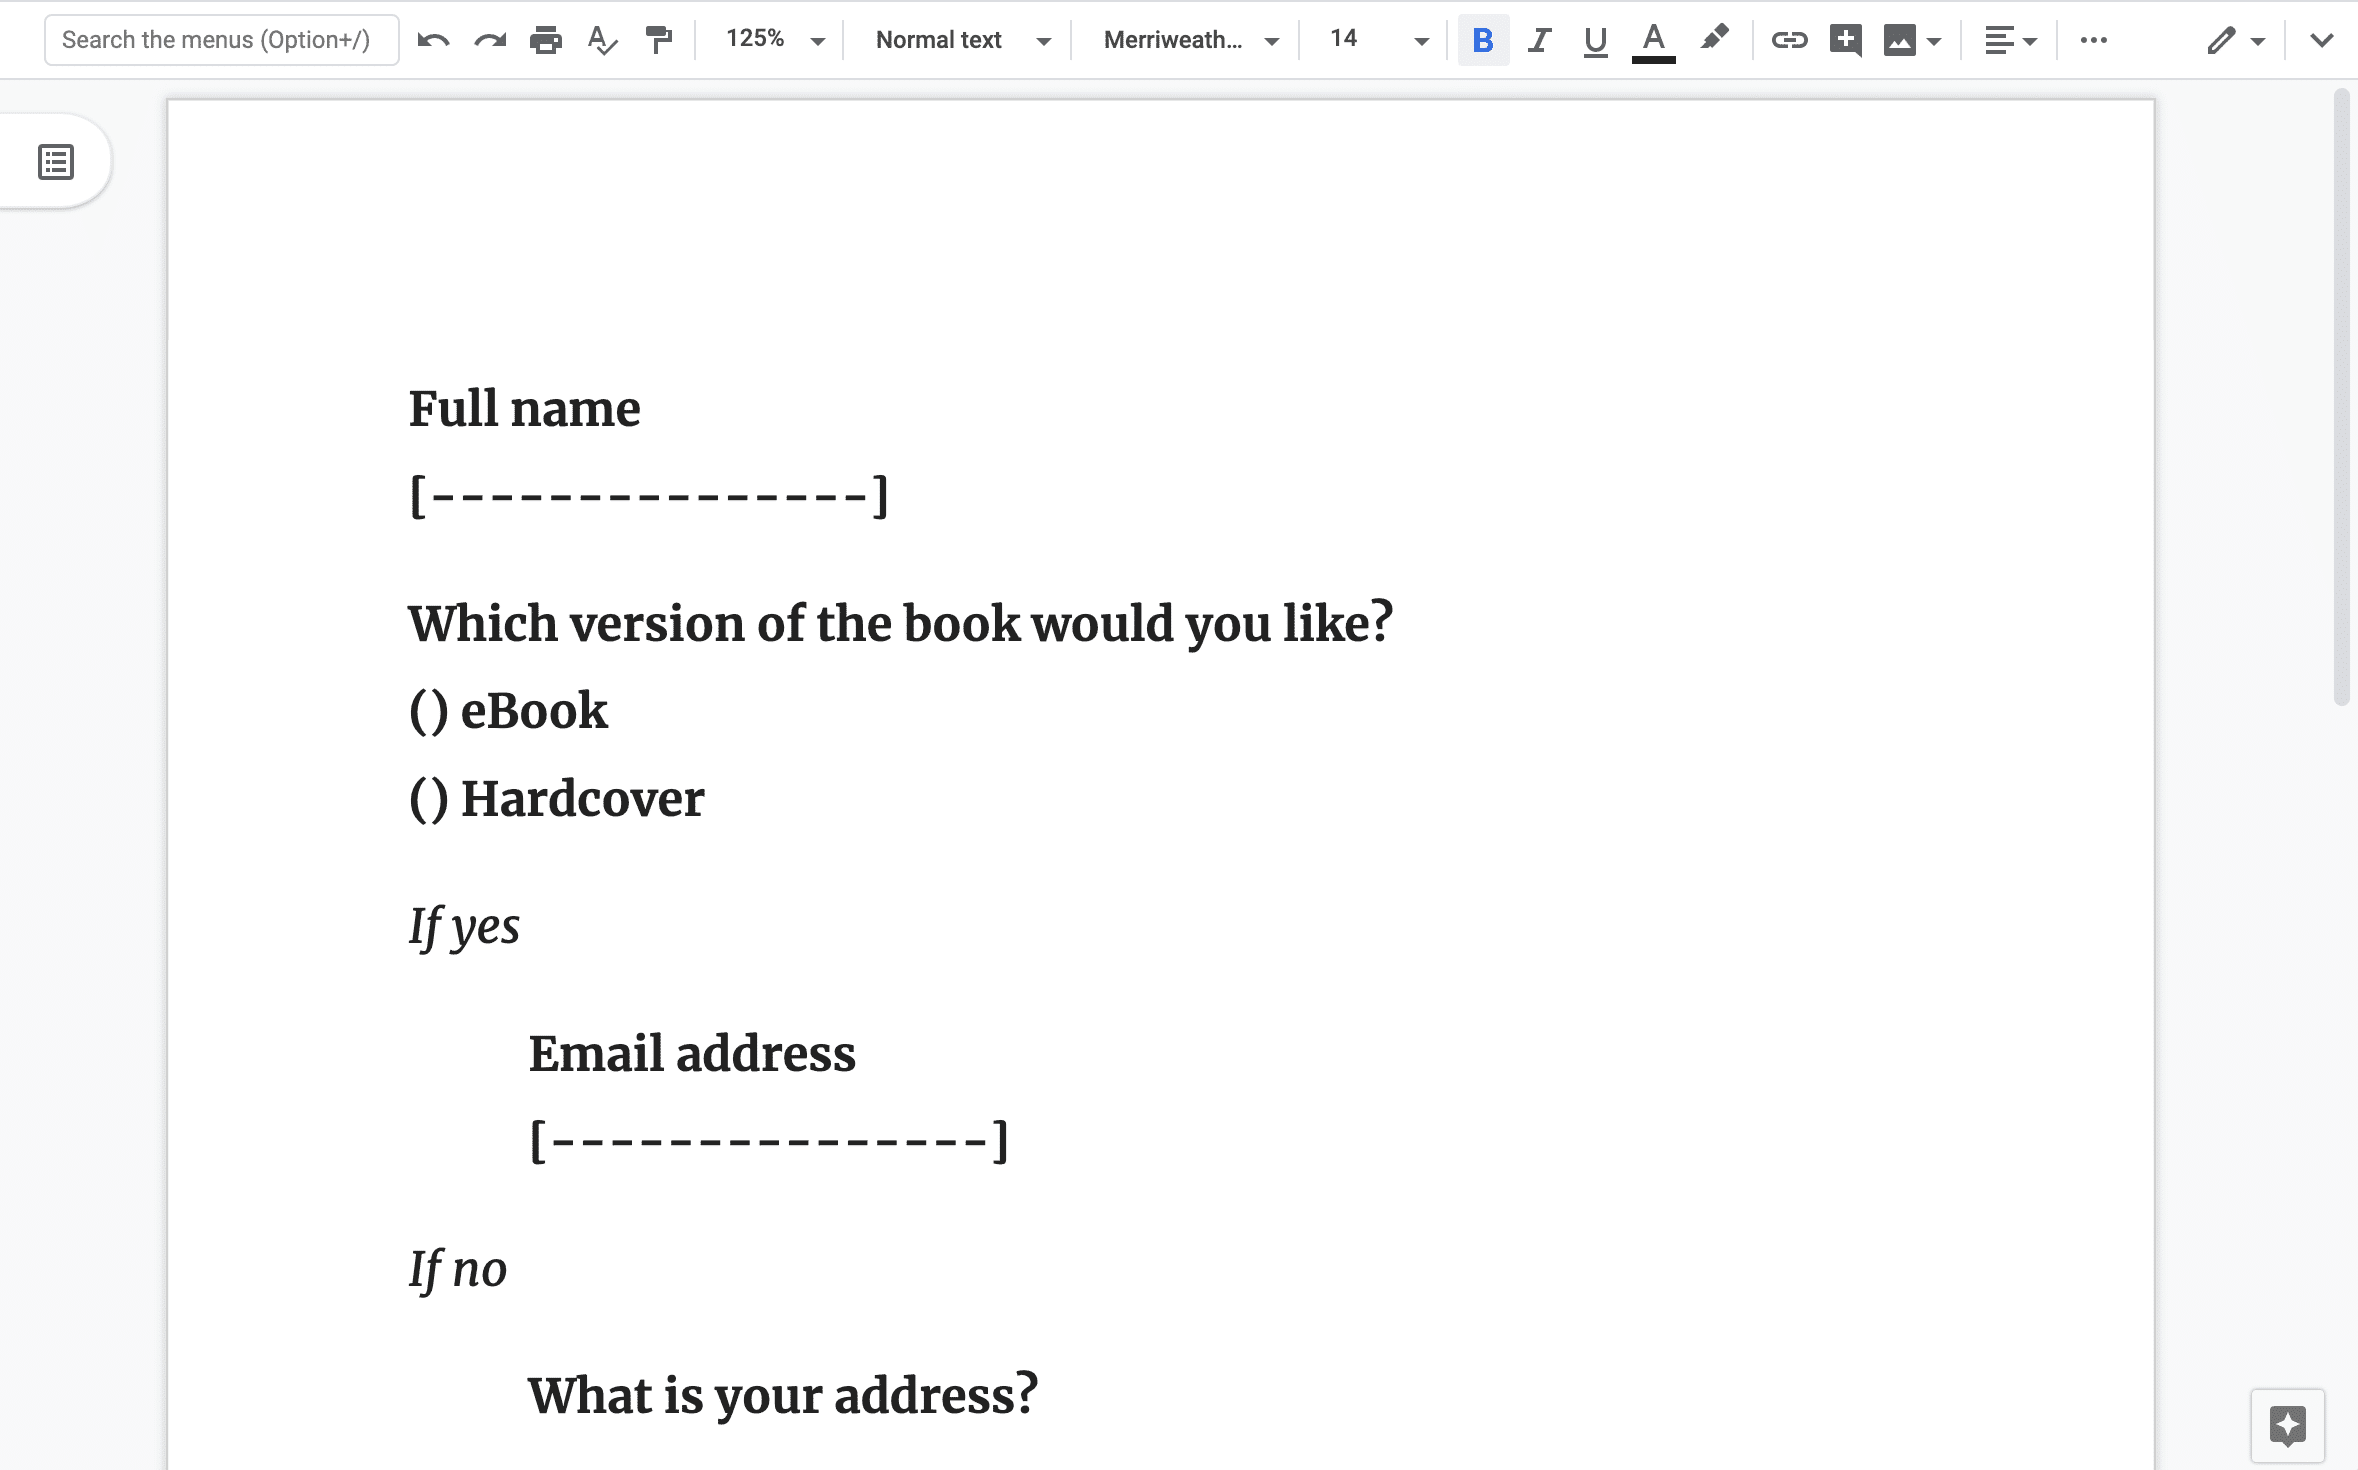 An example of a form designed in plain text